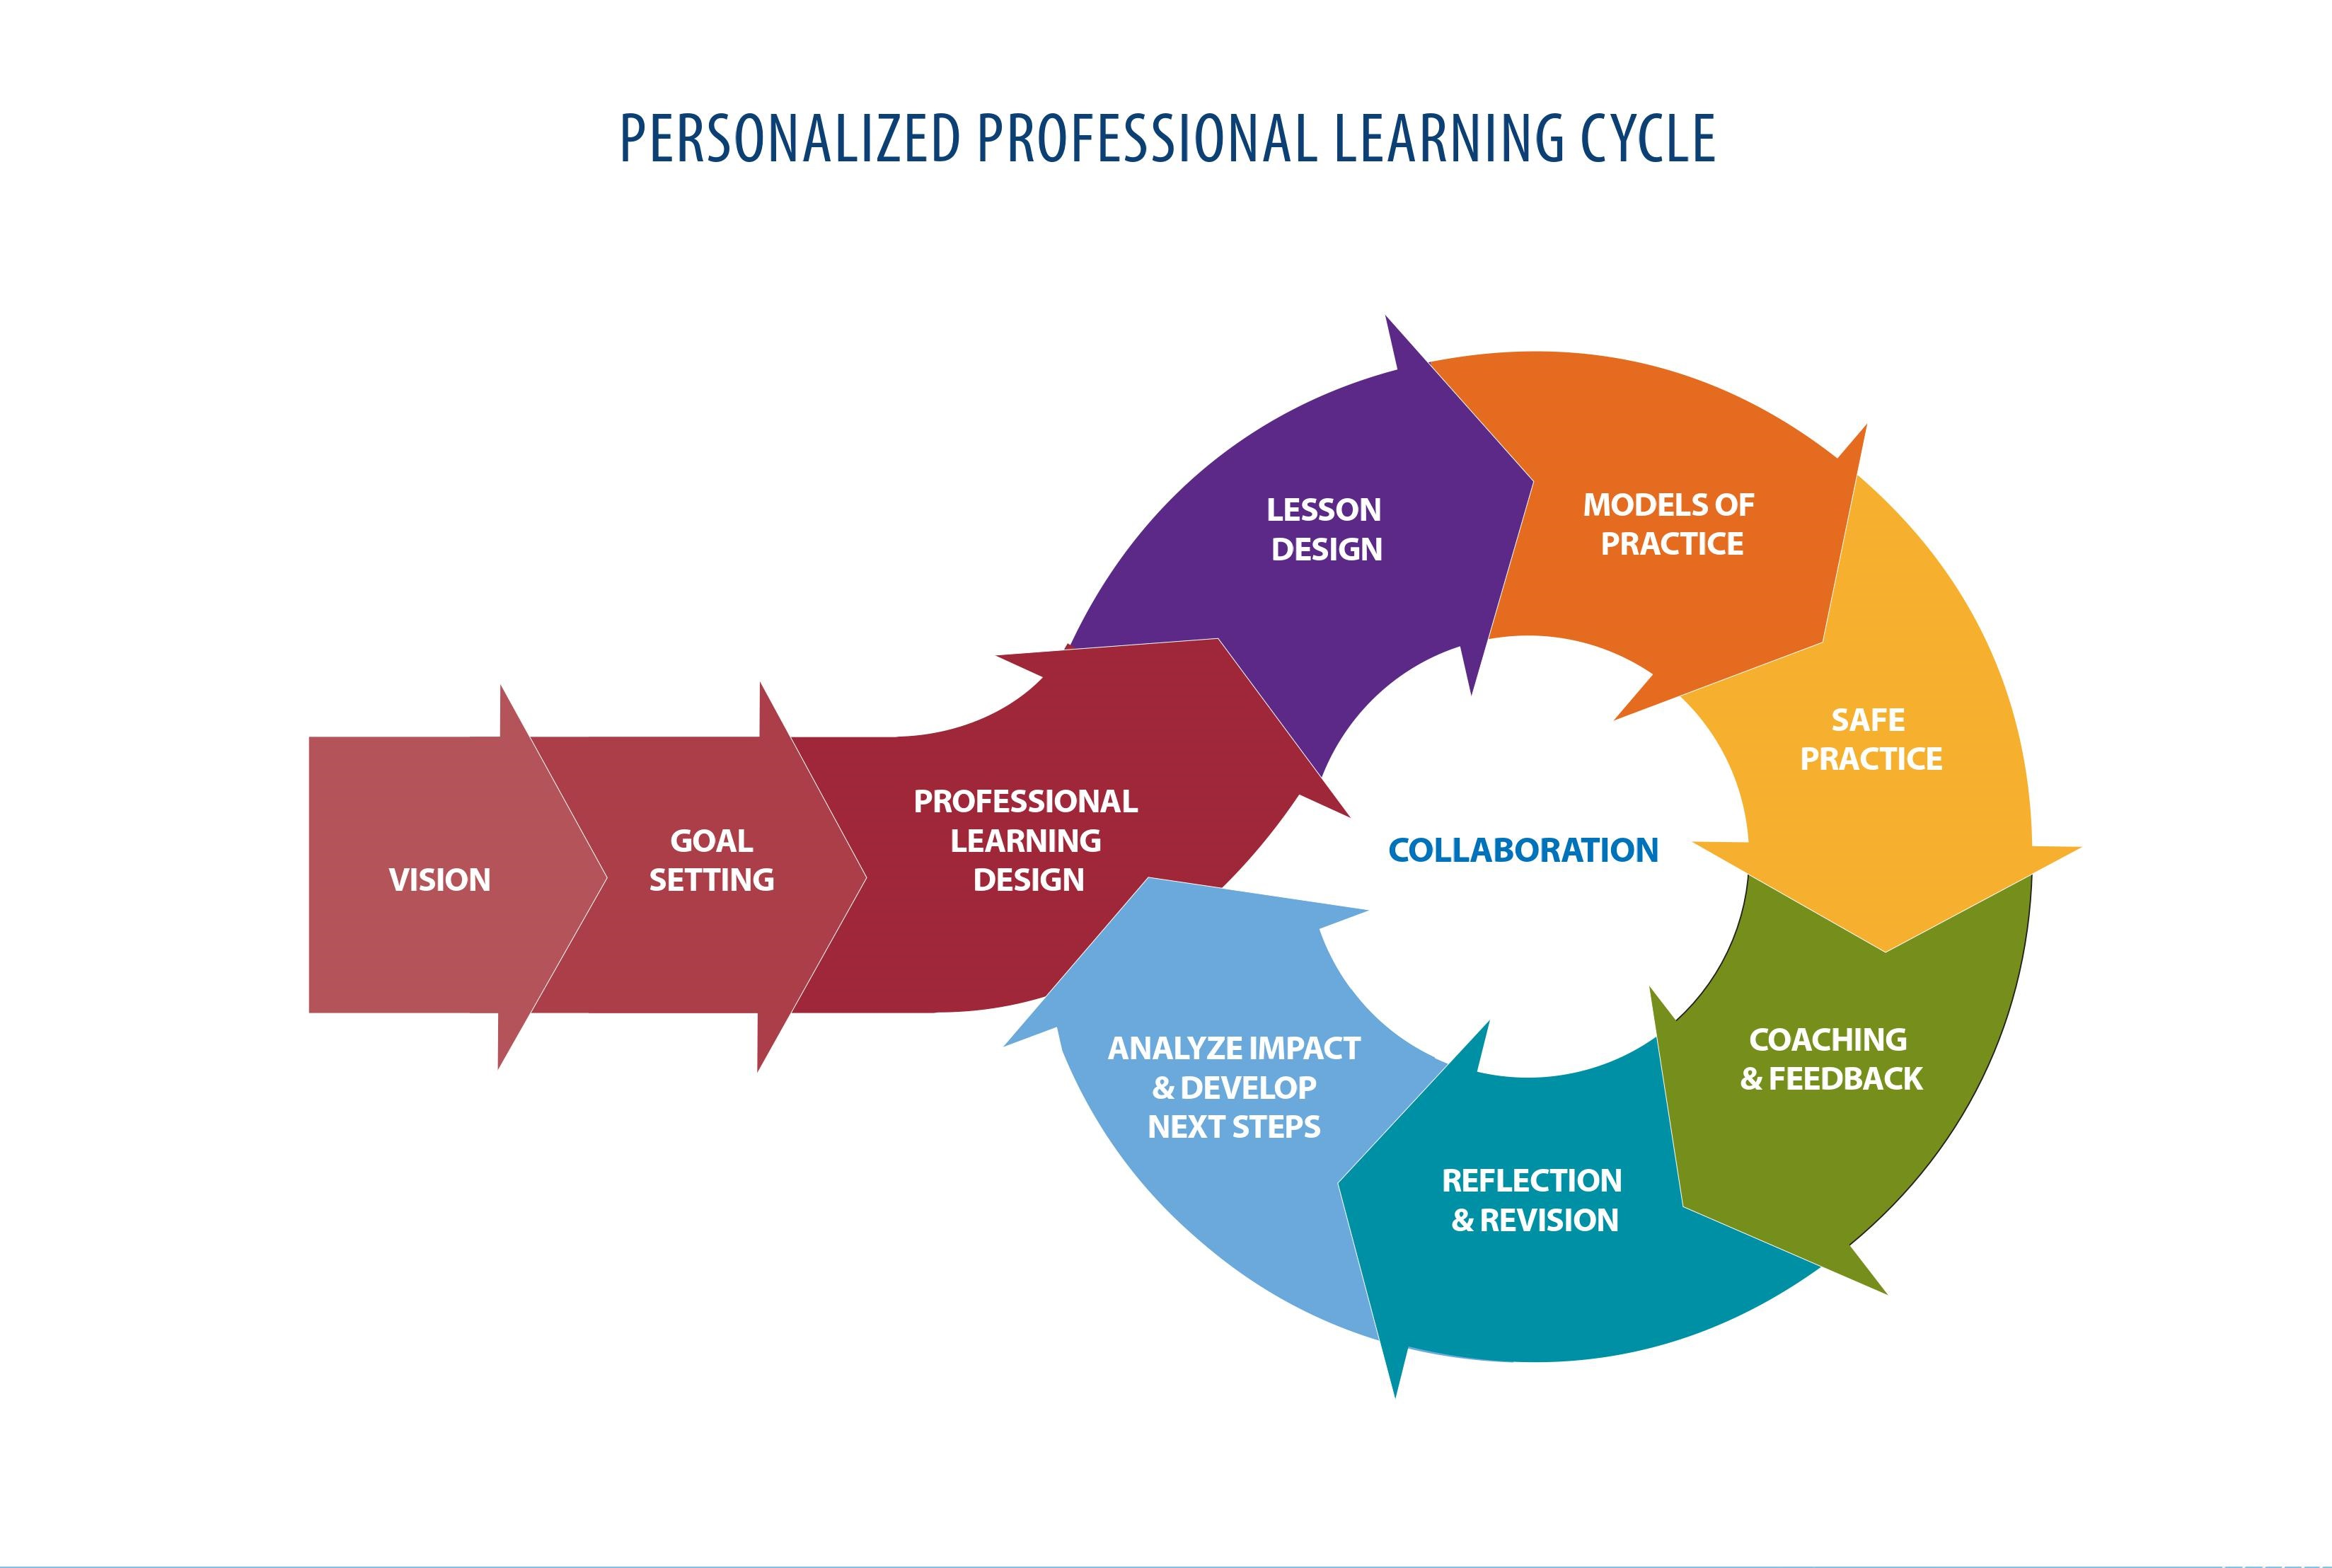 Learning cycle diagram product wiring diagrams personalized prof learning cycle institute for entrepreneurship in rh sites sandiego edu enchanted learning water cycle diagram kolb learning cycle diagram ccuart Gallery